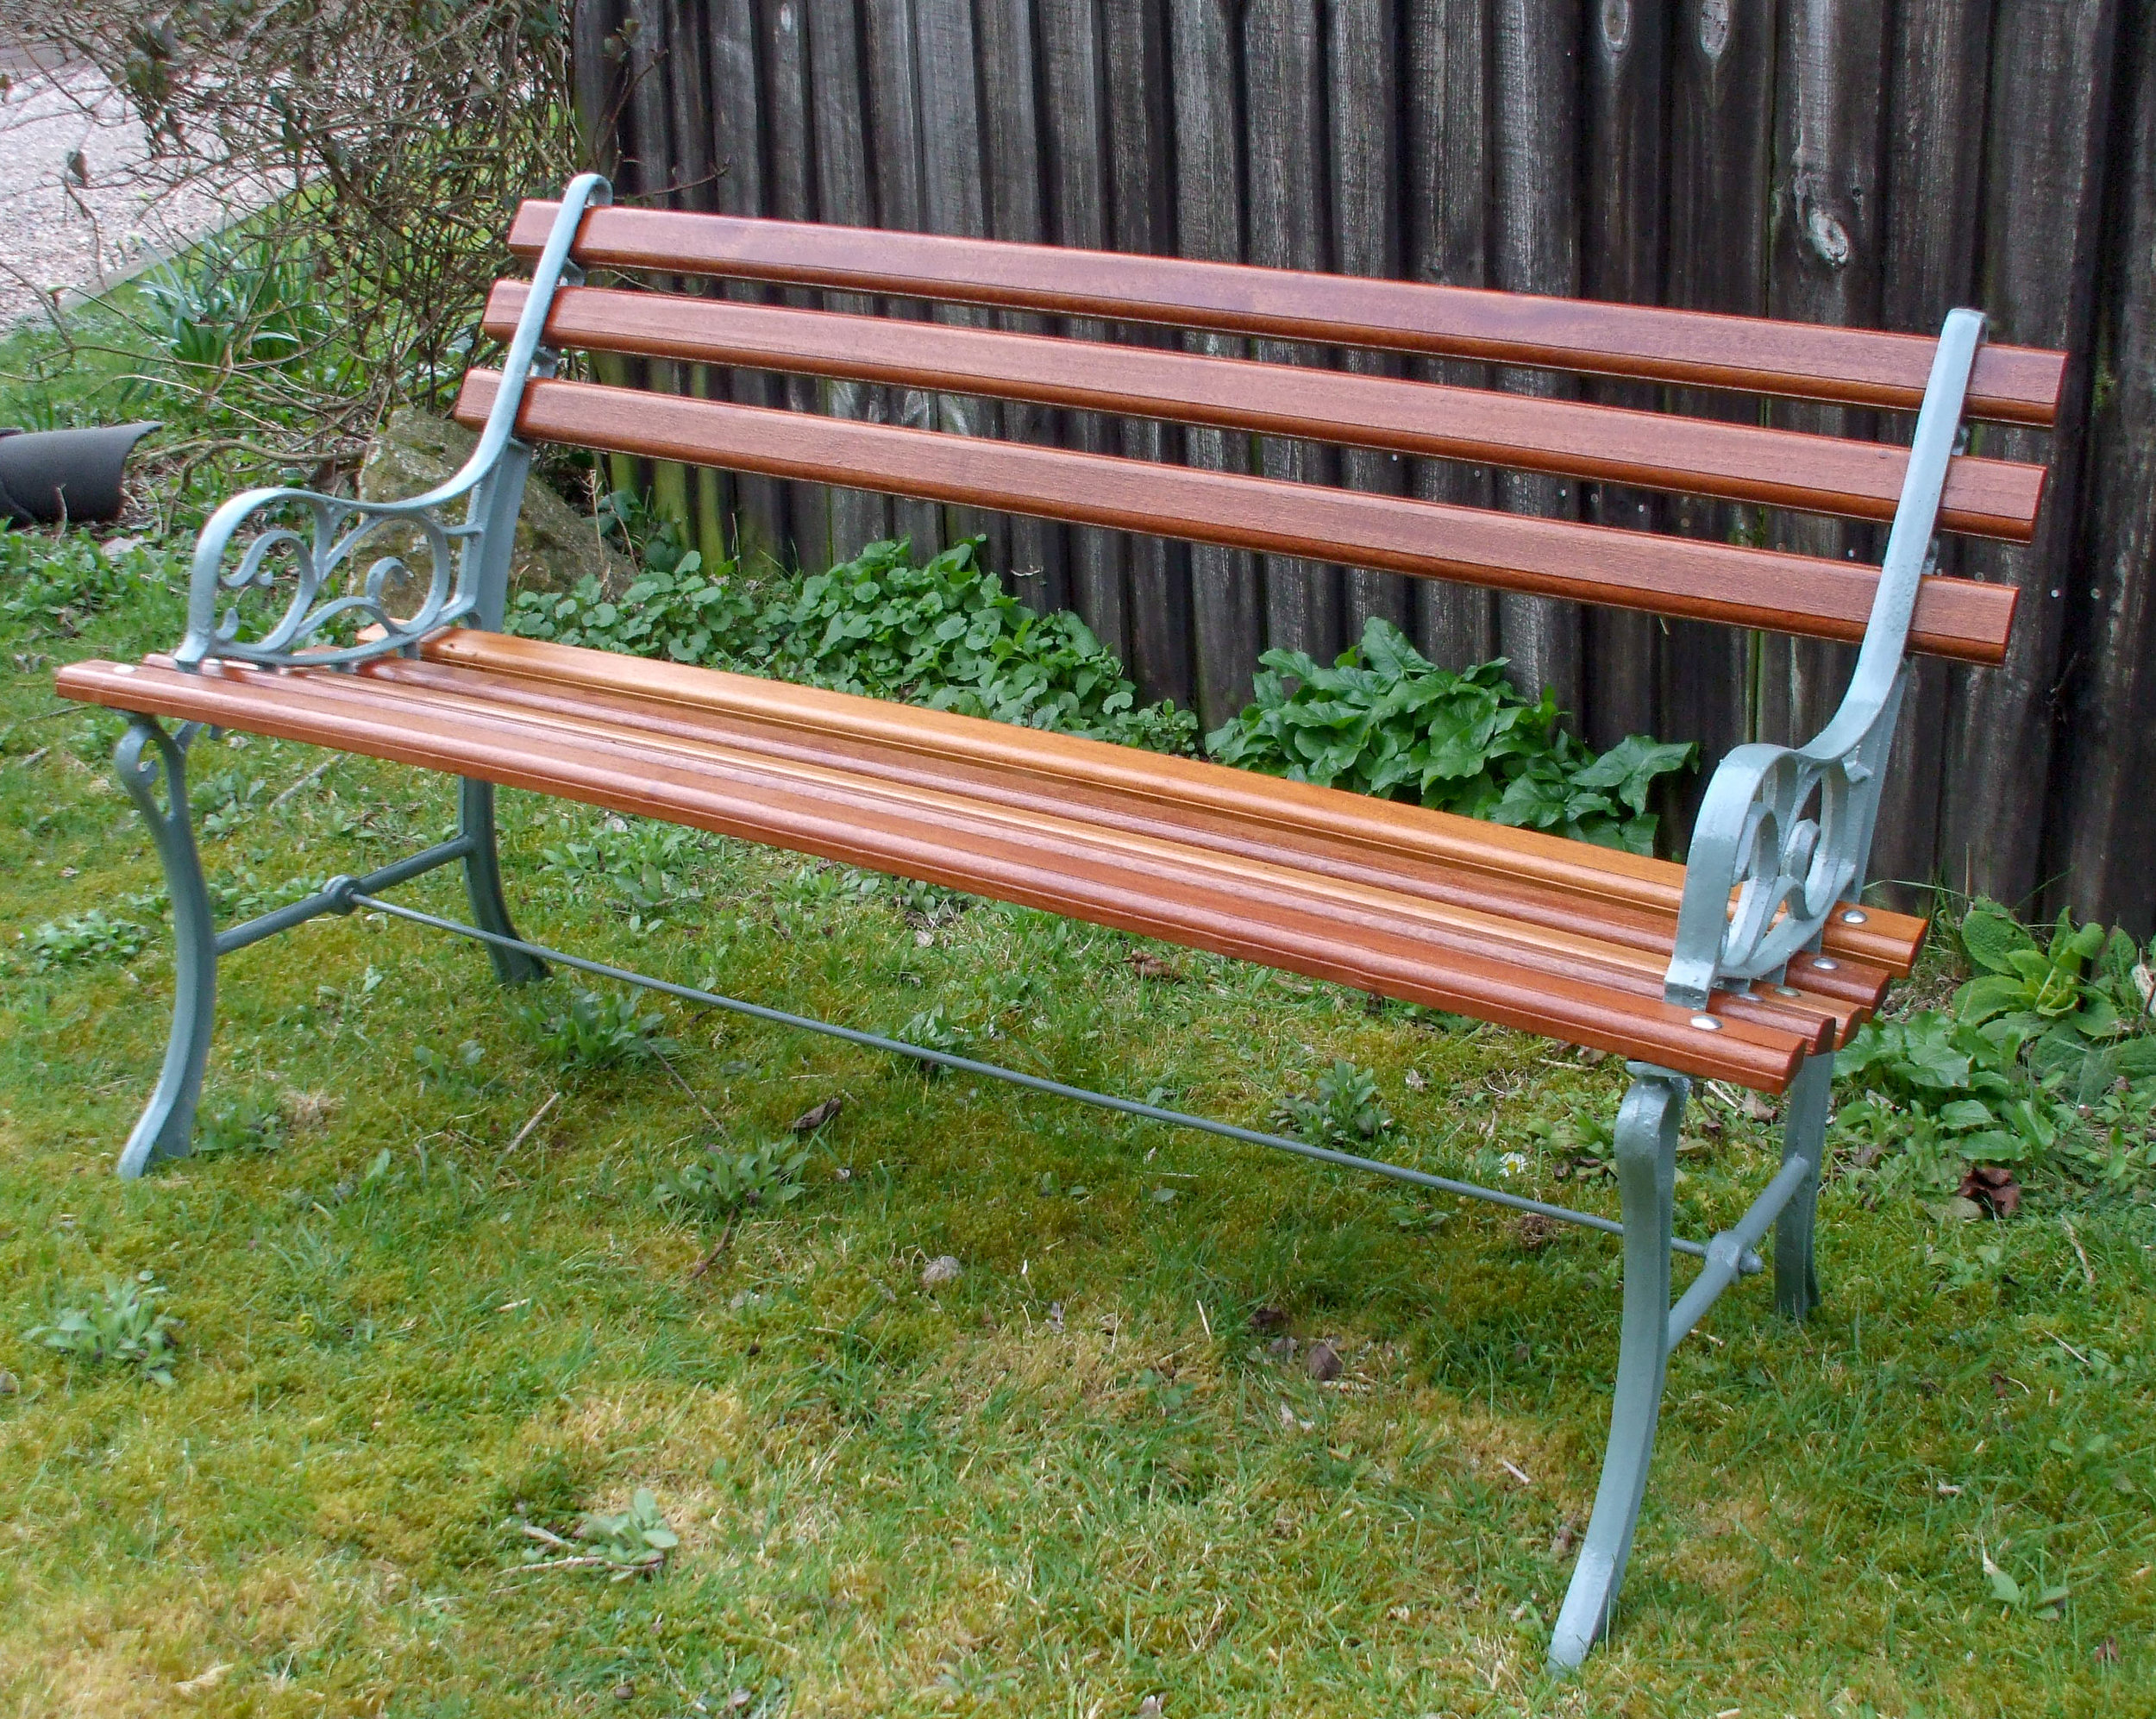 Lightweight Two Seat Bench - go to   Gallery   for larger photos